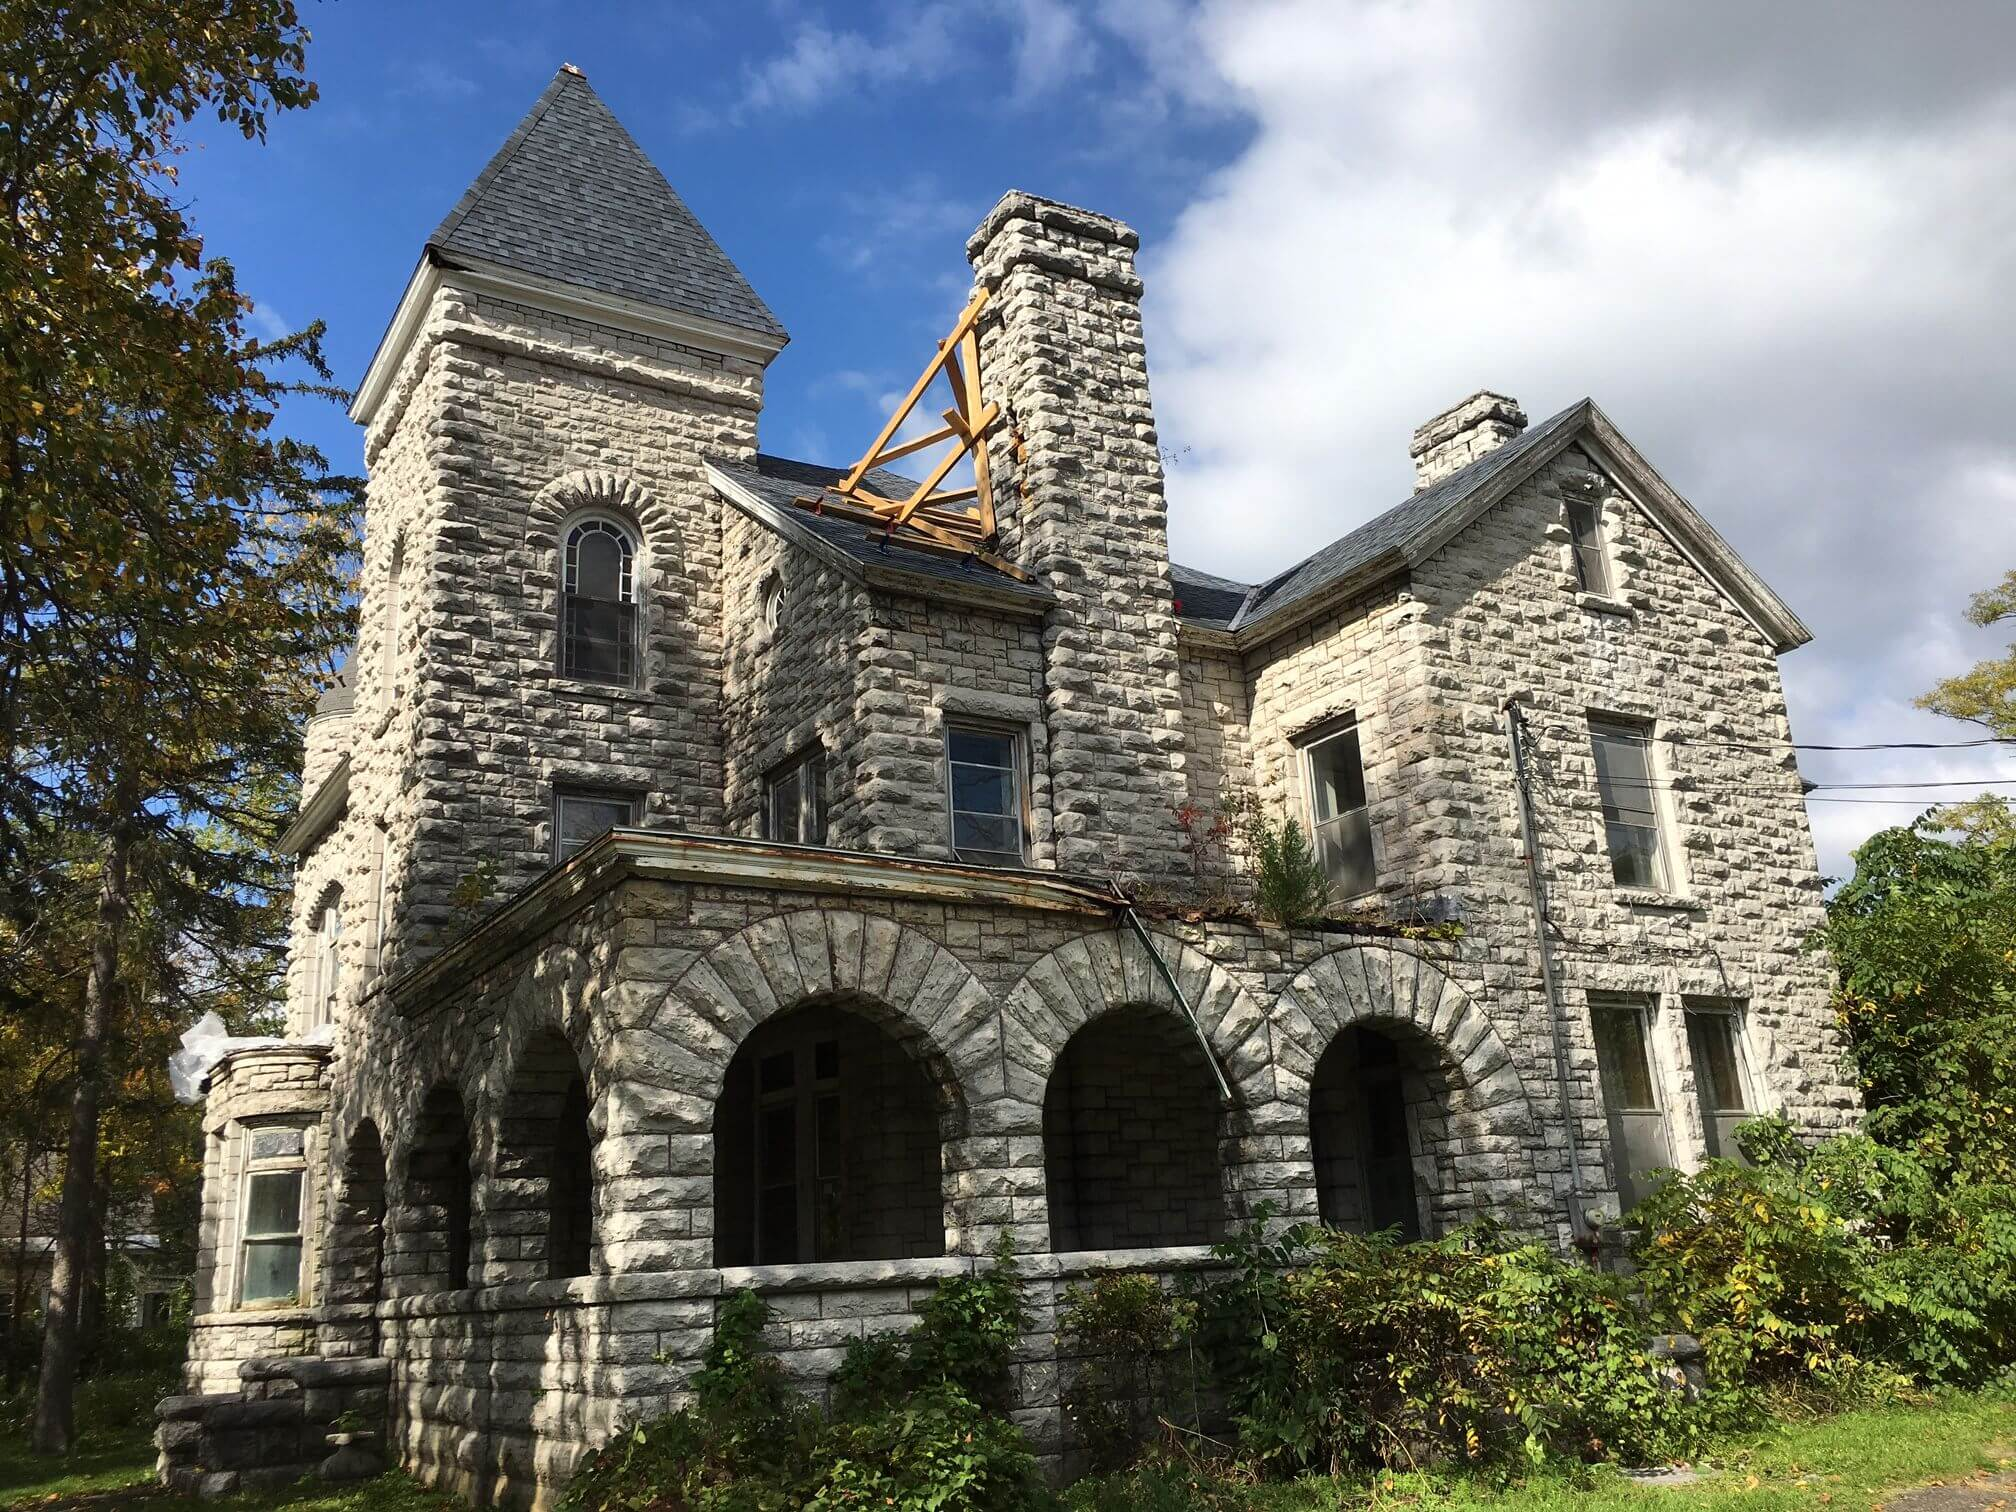 Montgomery County: Greater Mohawk Valley Land Bank - Stone Lodge Building Condition Report